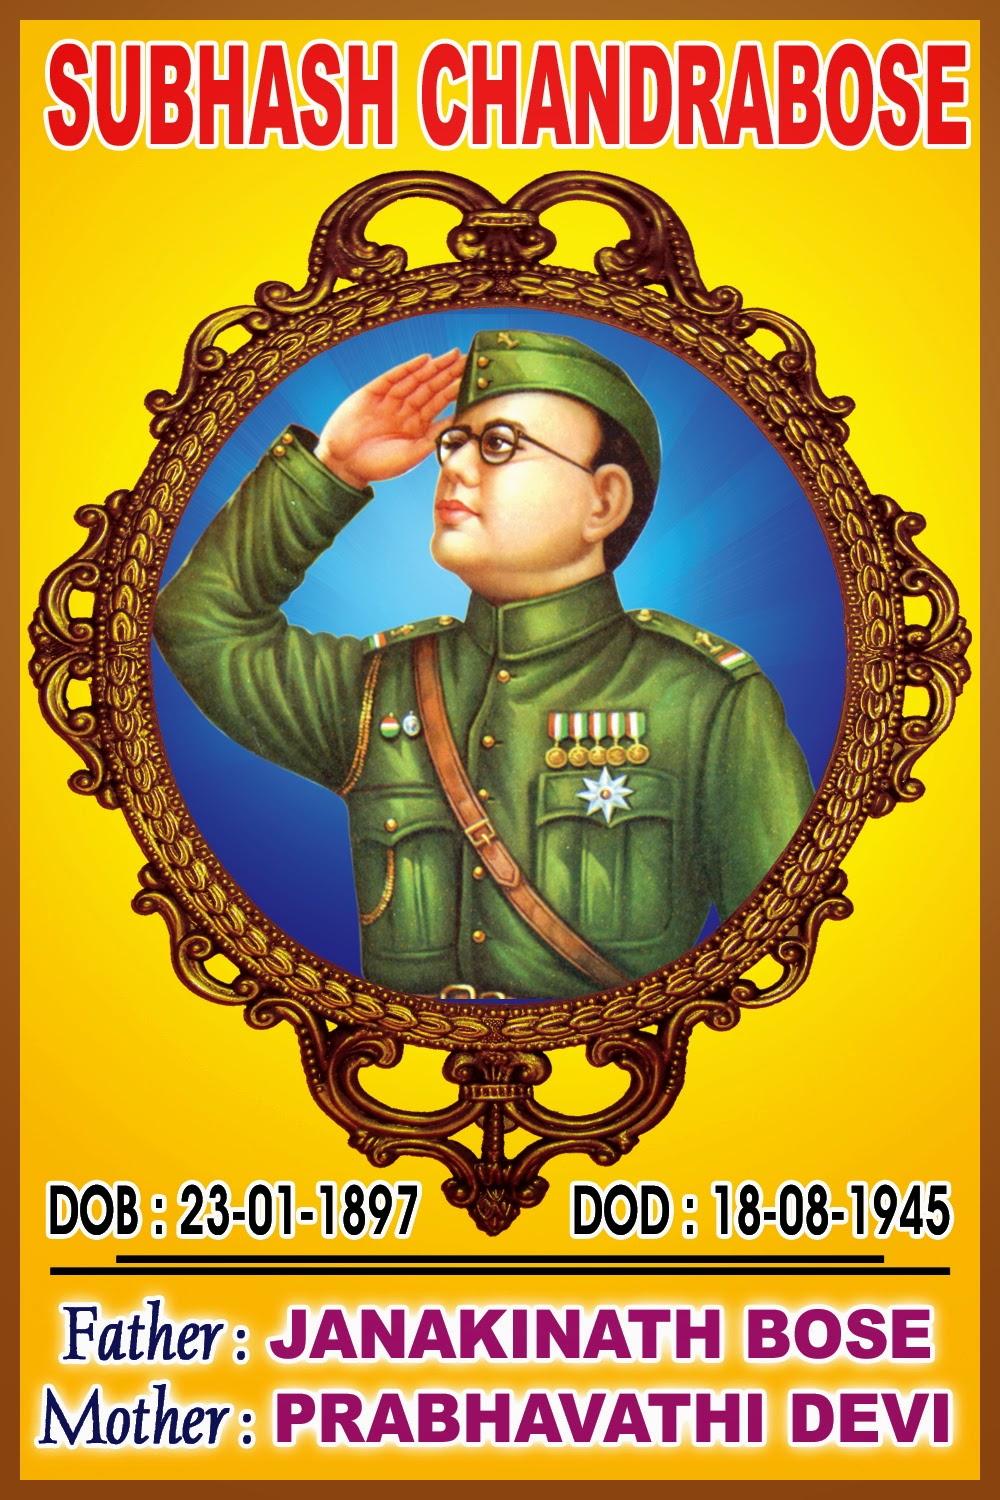 freedom-fighter-subhash-chandrabose-images-with-names-naveengfx.com